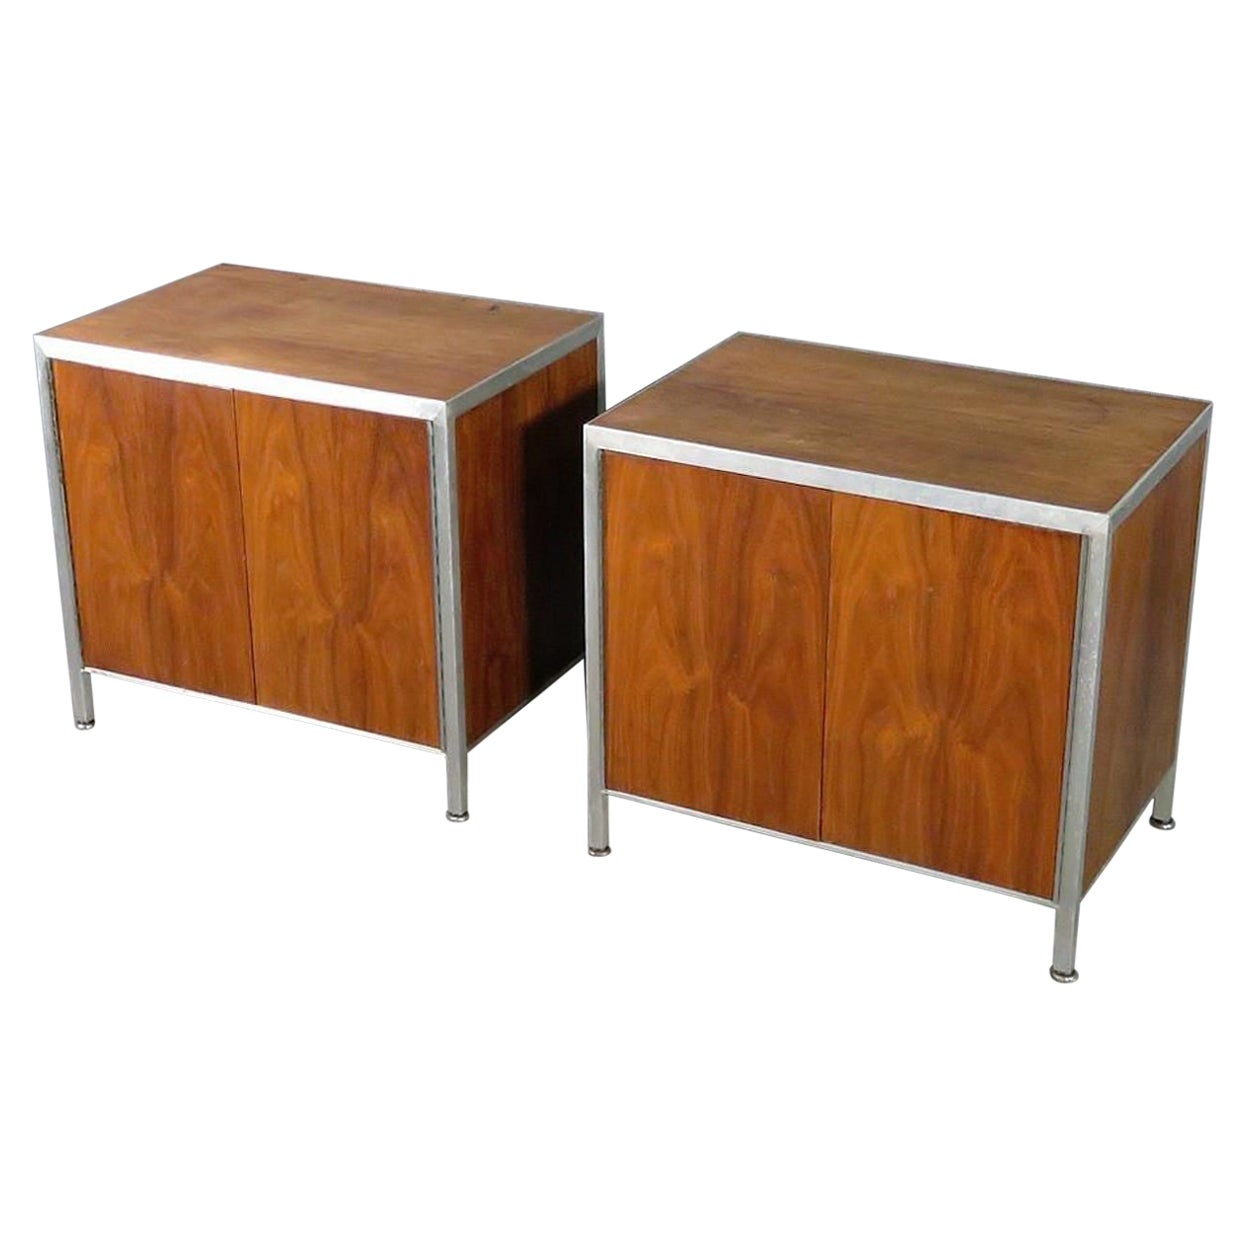 Walnut and Aluminum Side Cabinets